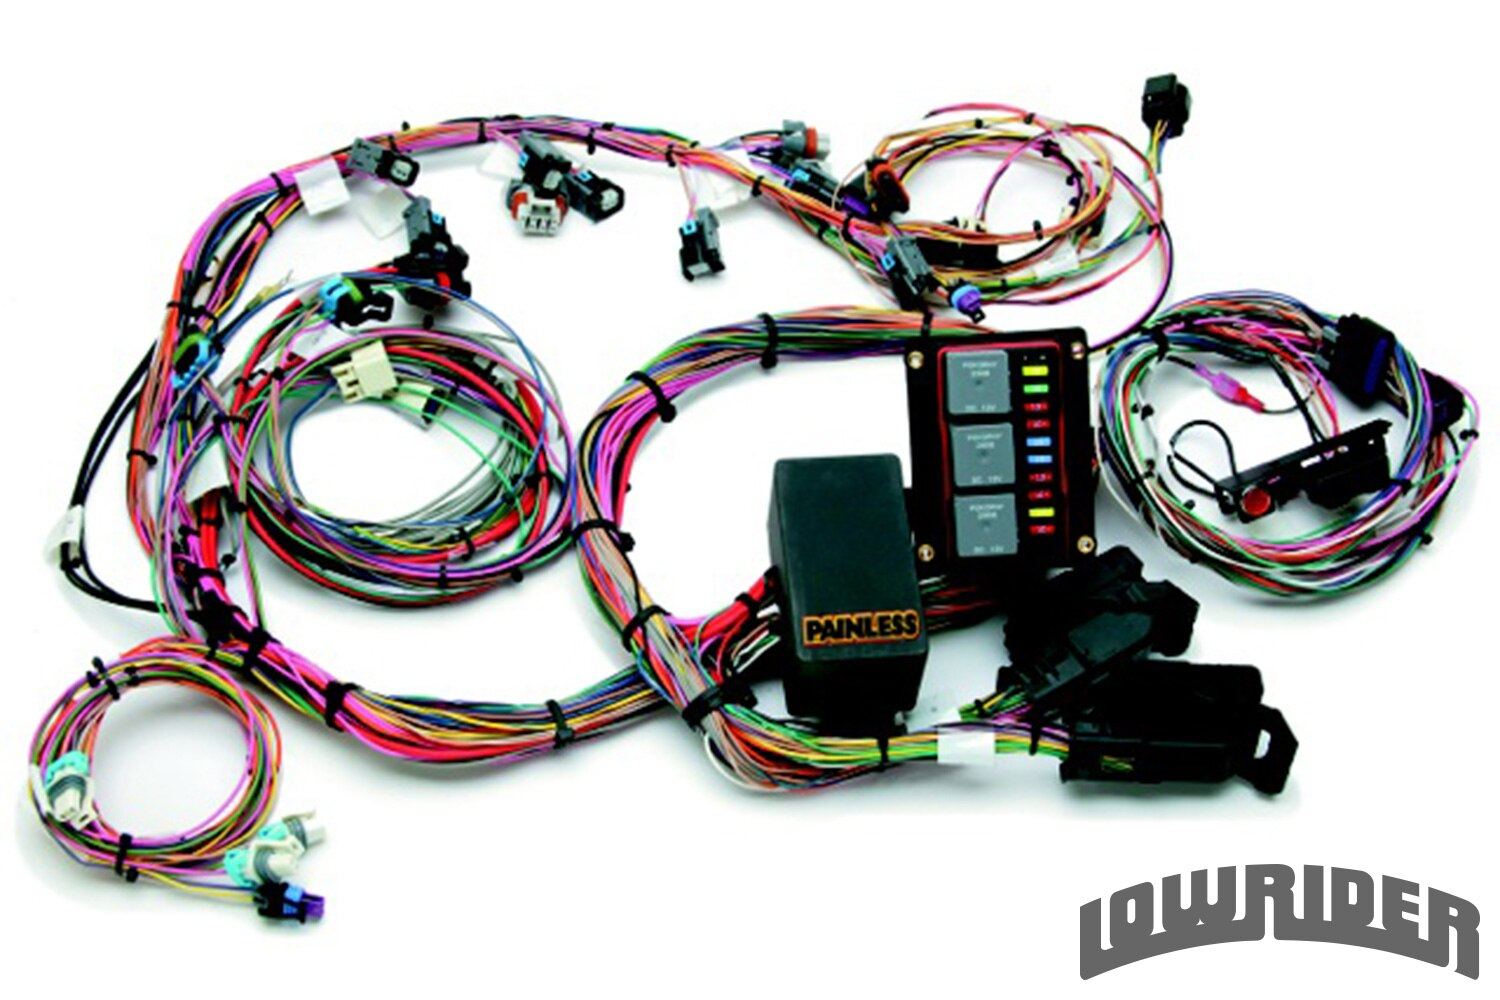 lowrider new products march 2014 painless performance LS harness lowrider new products march 2014 lowrider magazine painless ls wiring harness at webbmarketing.co